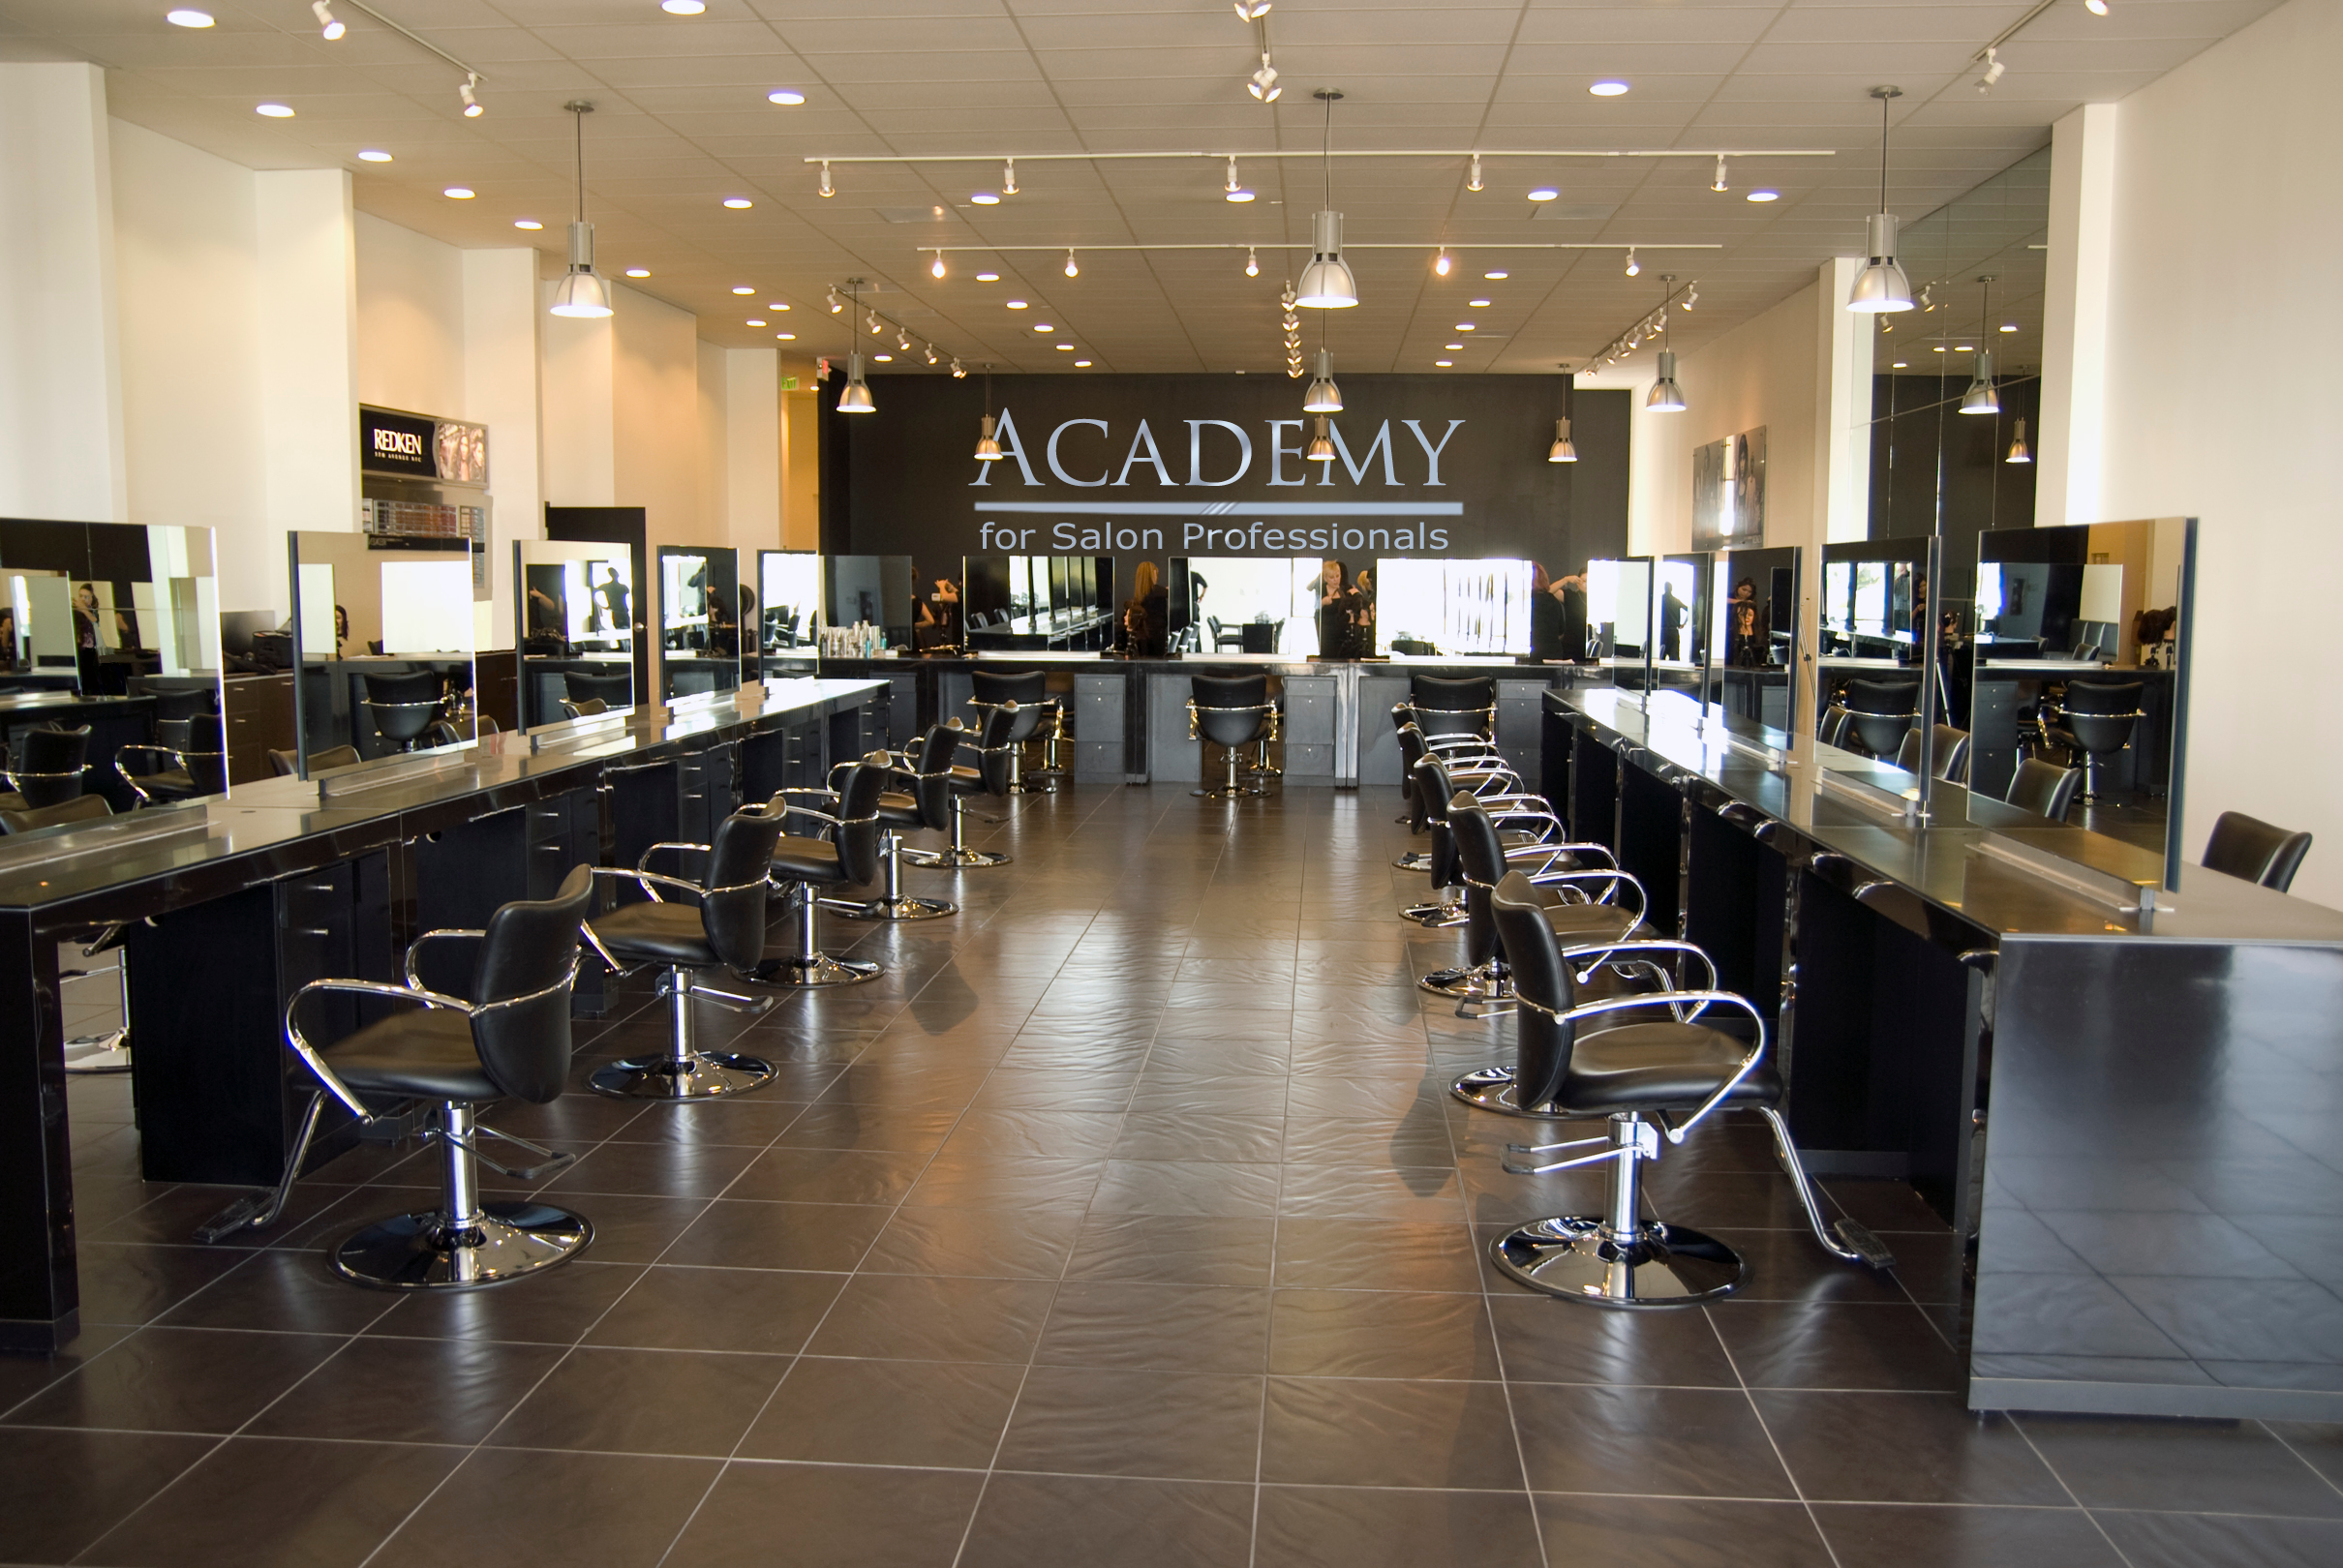 Academy for salon professionals member santa clara ca for Academy for salon professional